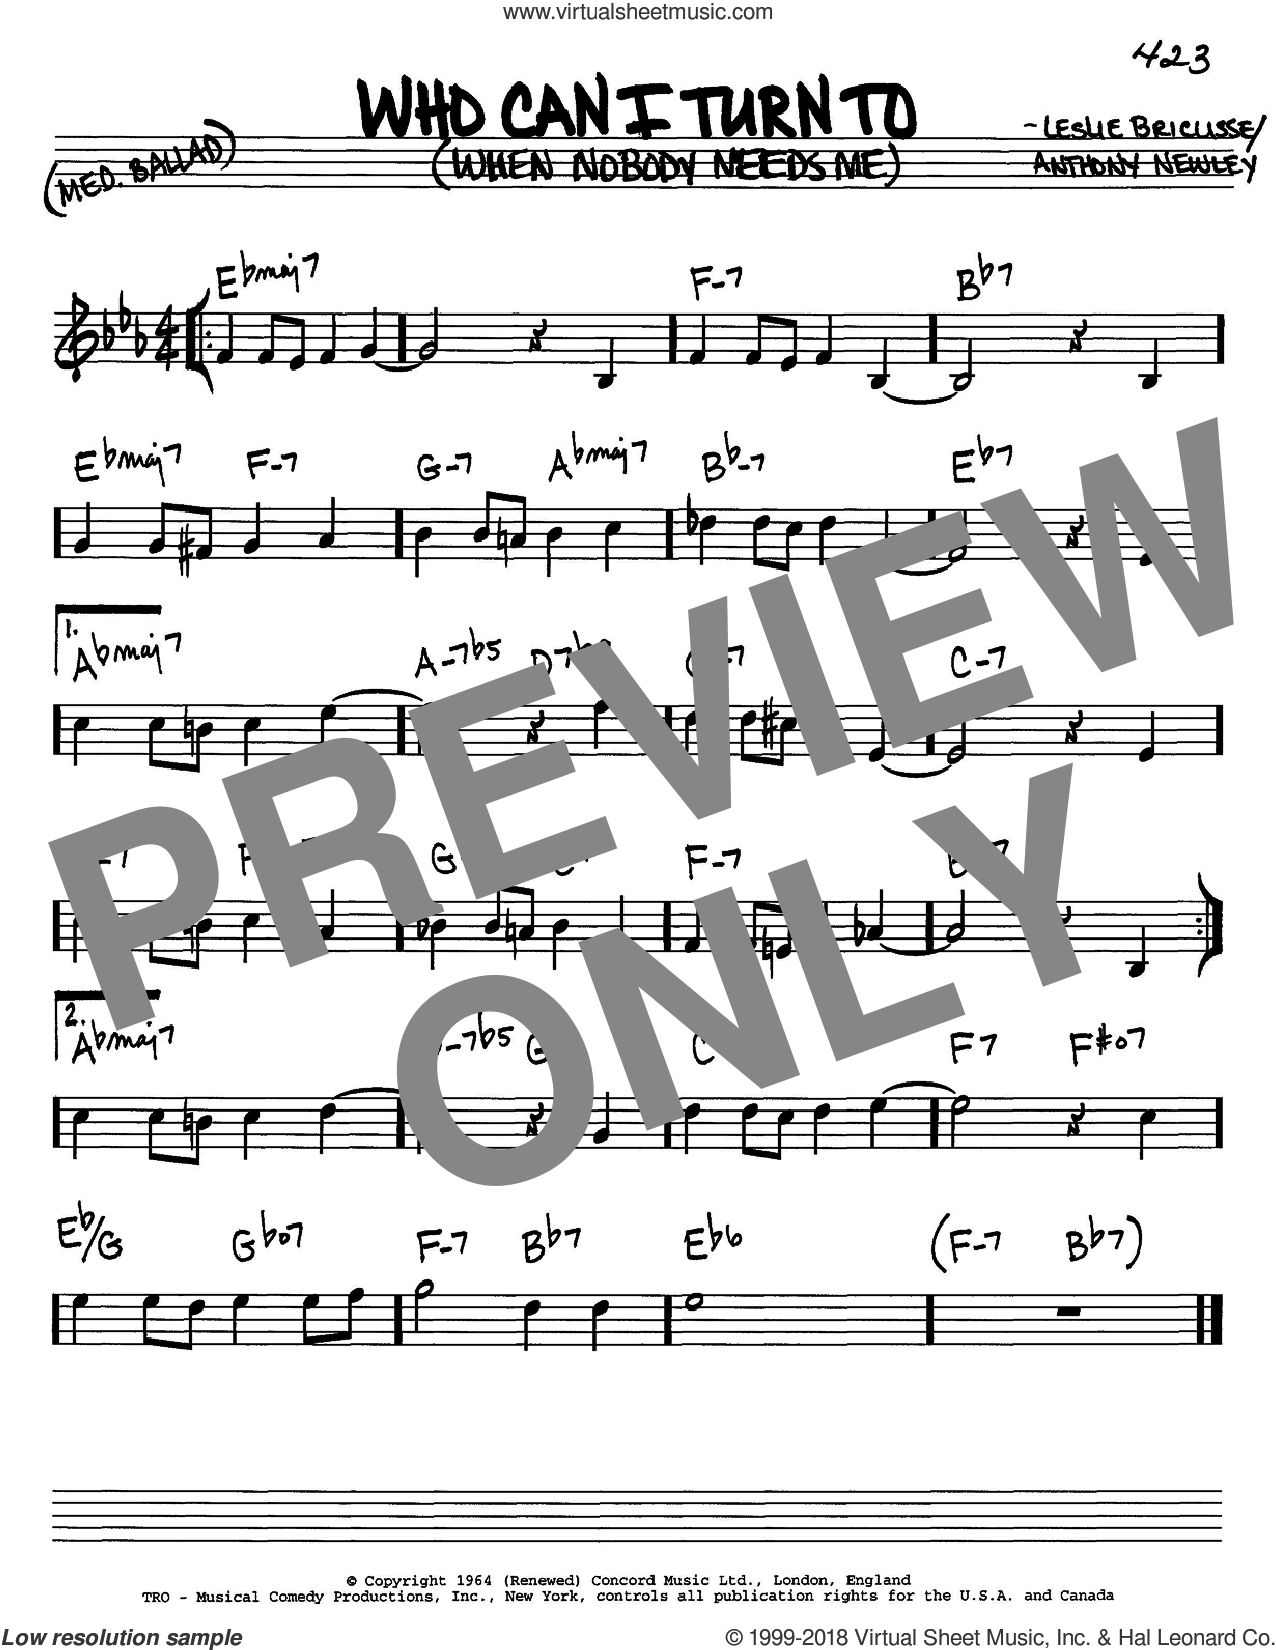 Who Can I Turn To (When Nobody Needs Me) sheet music for voice and other instruments (in C) by Tony Bennett, Anthony Newley and Leslie Bricusse, intermediate skill level